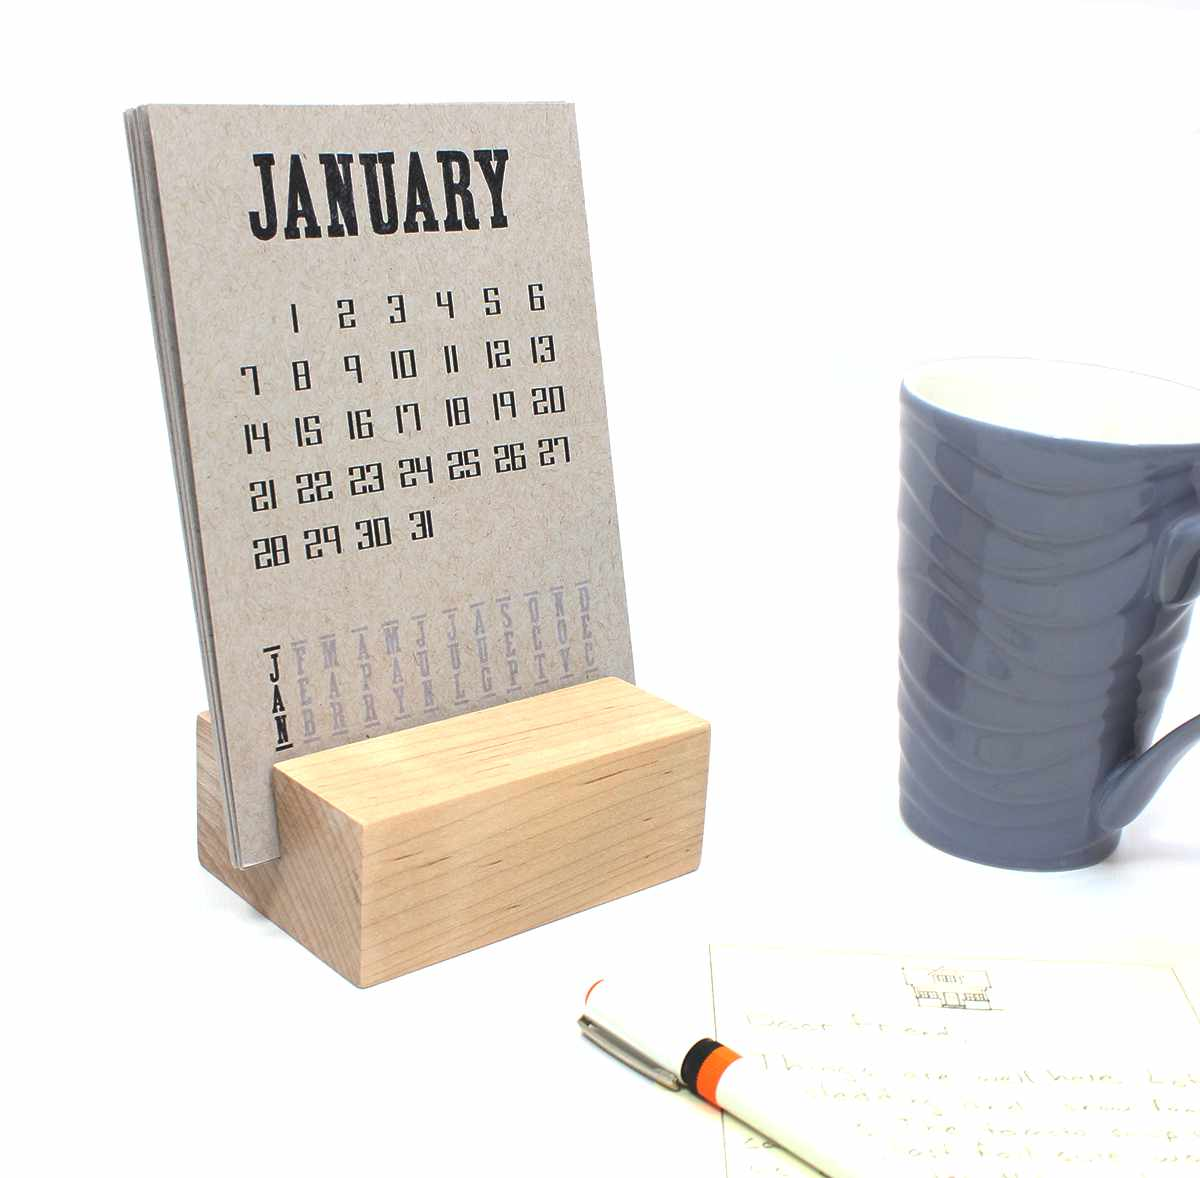 2018 Desk Calendar with Wood Block Stand